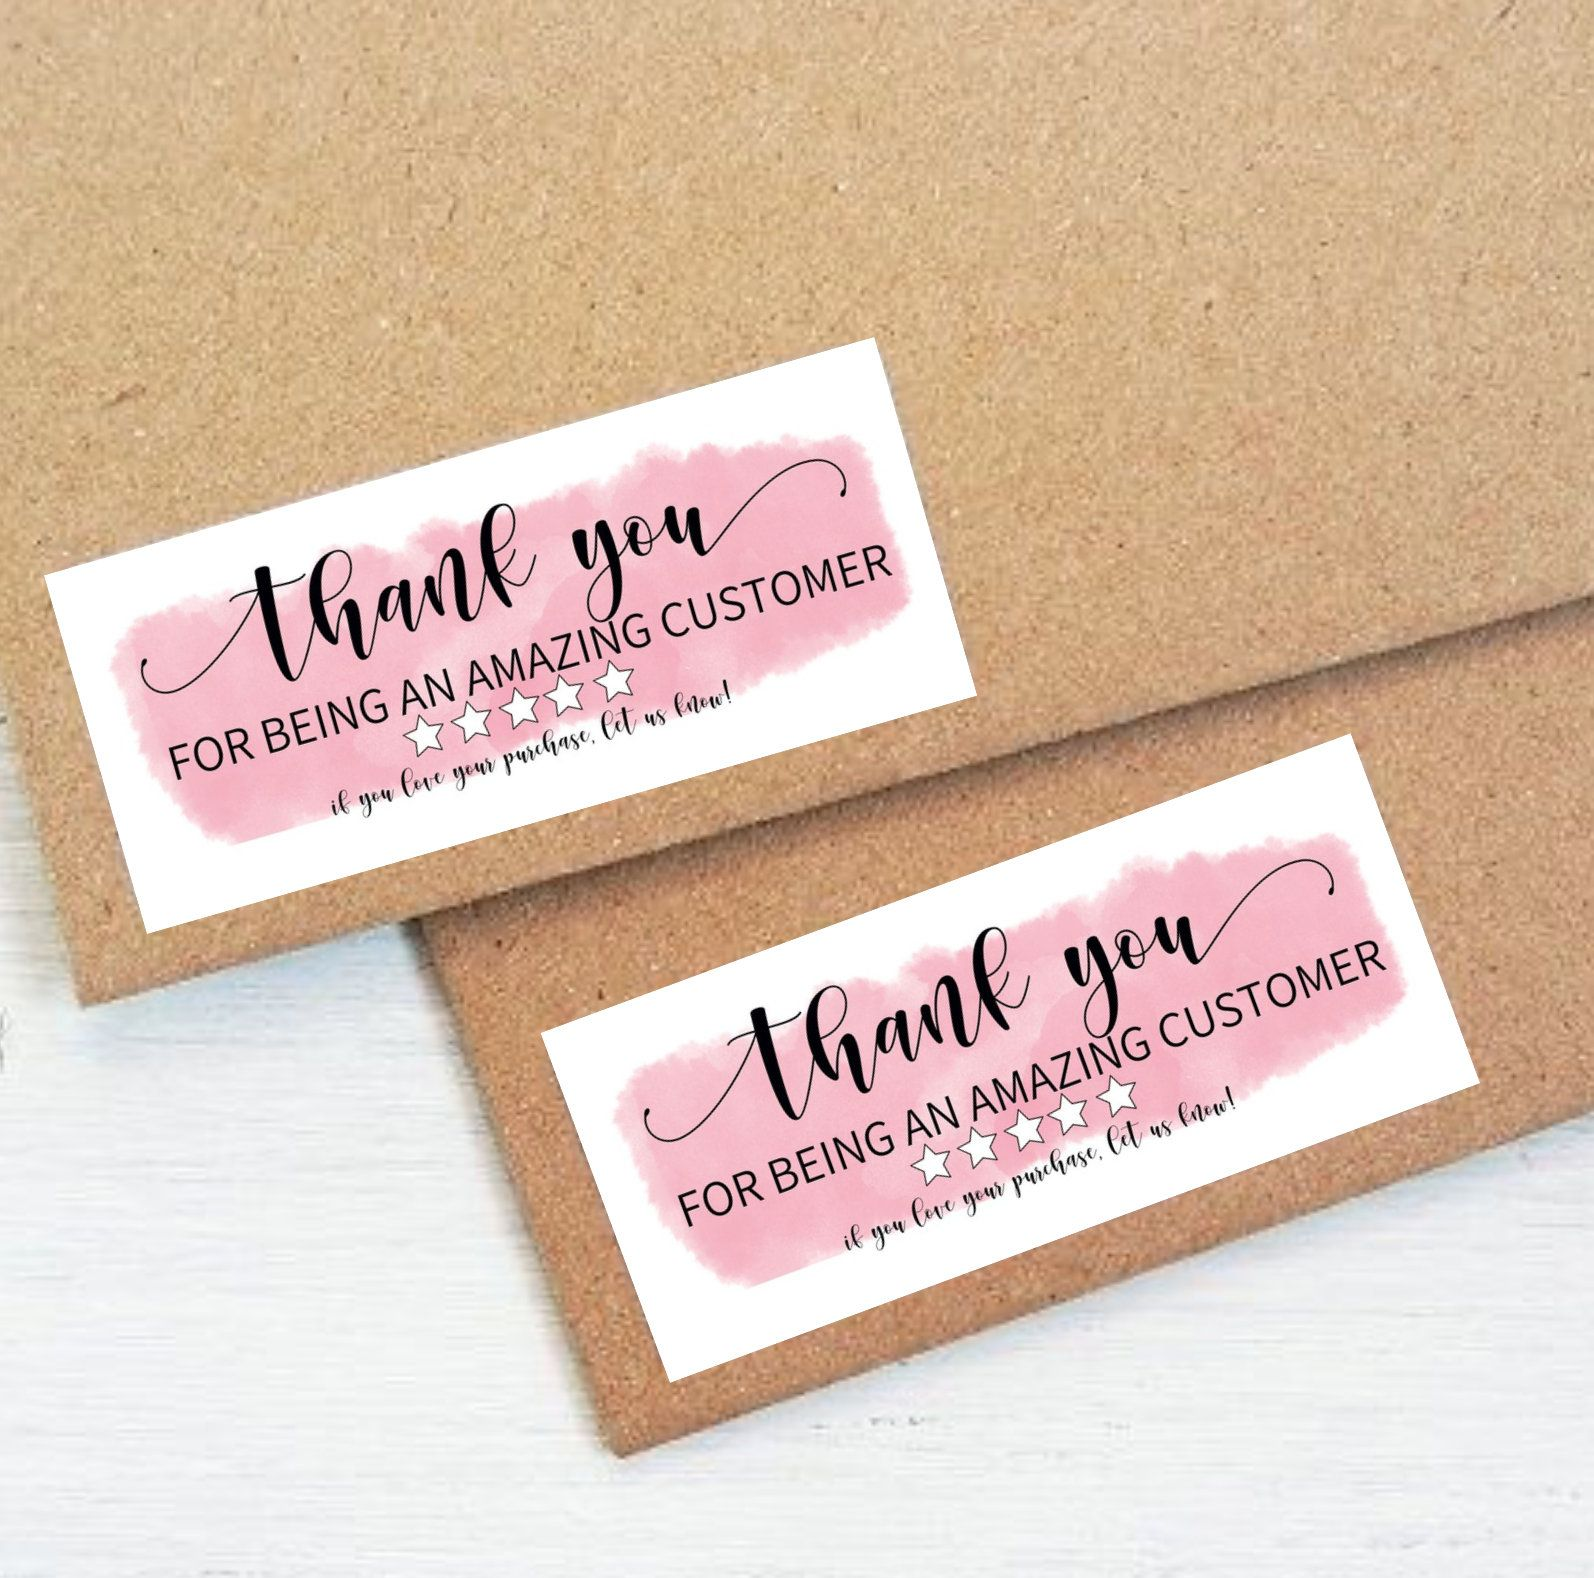 Instant Download Thank You Sticker Editable And Printable Thank You Cards Small Business Diy Small Business Packaging Kartu Nama Bisnis Kartu Nama Kartu